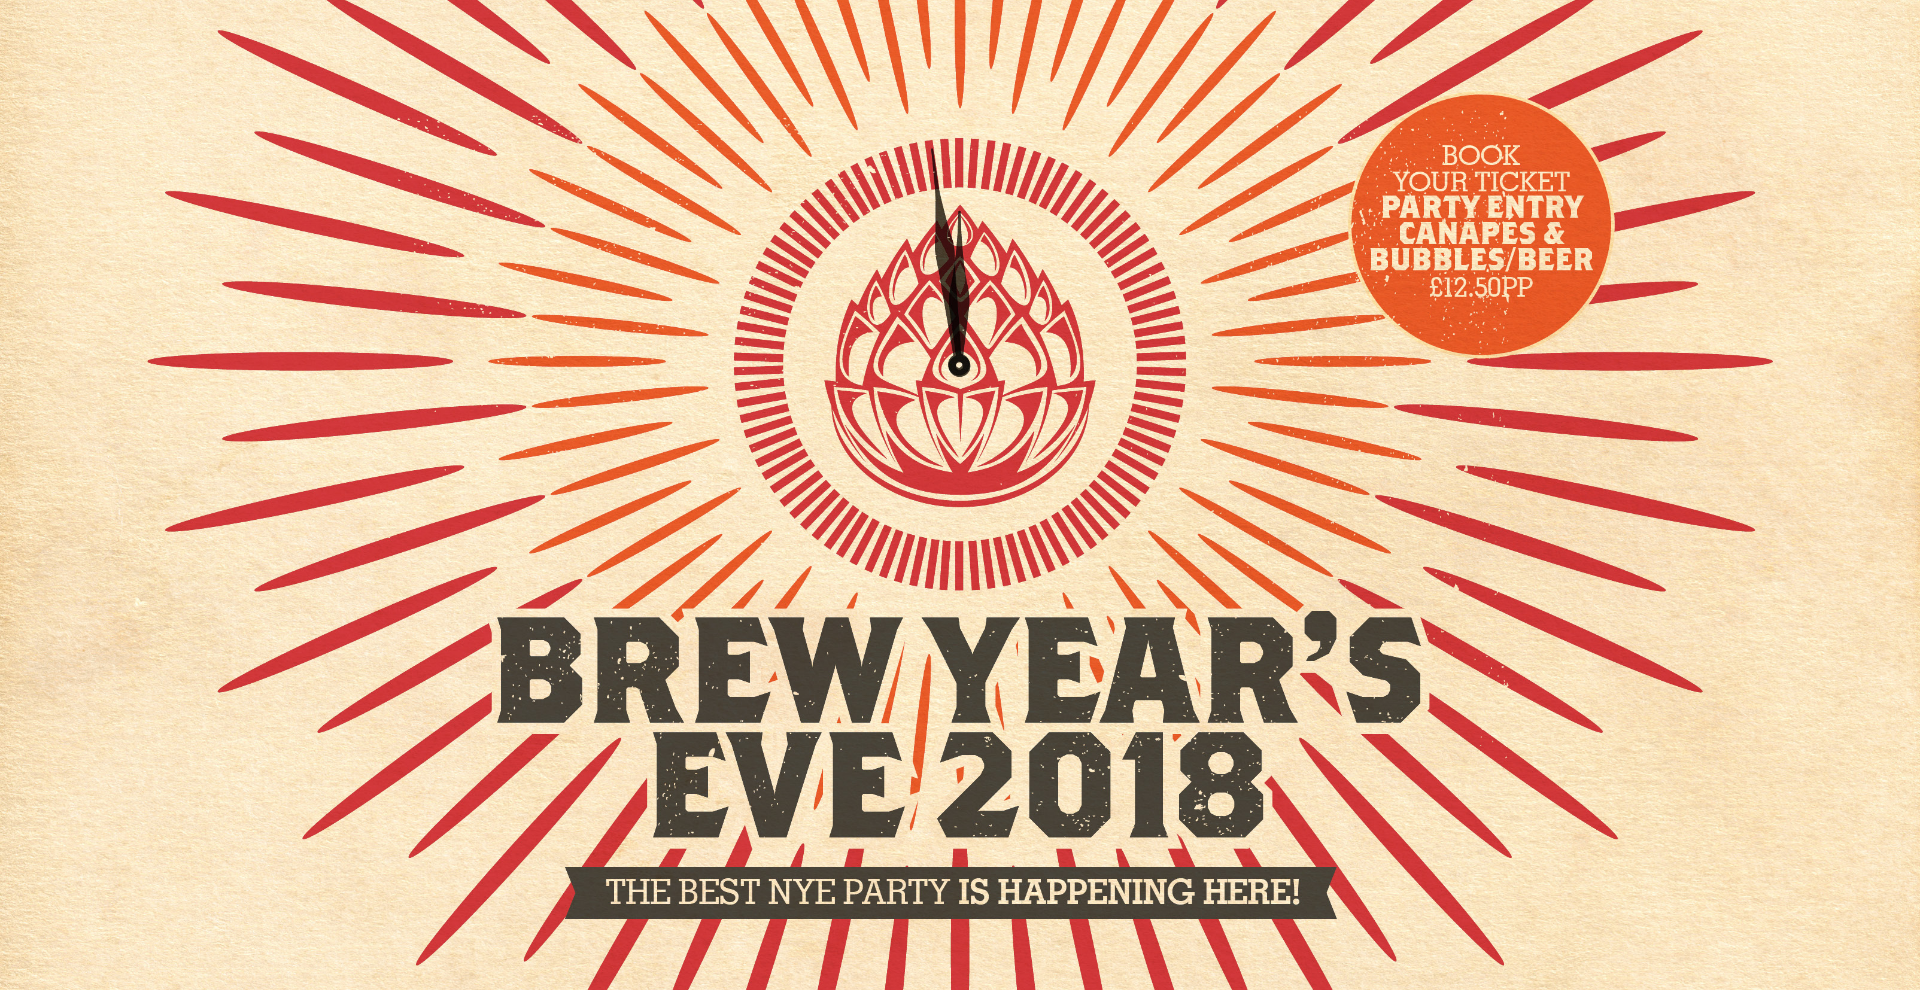 Brew Year's Eve - Hoxton